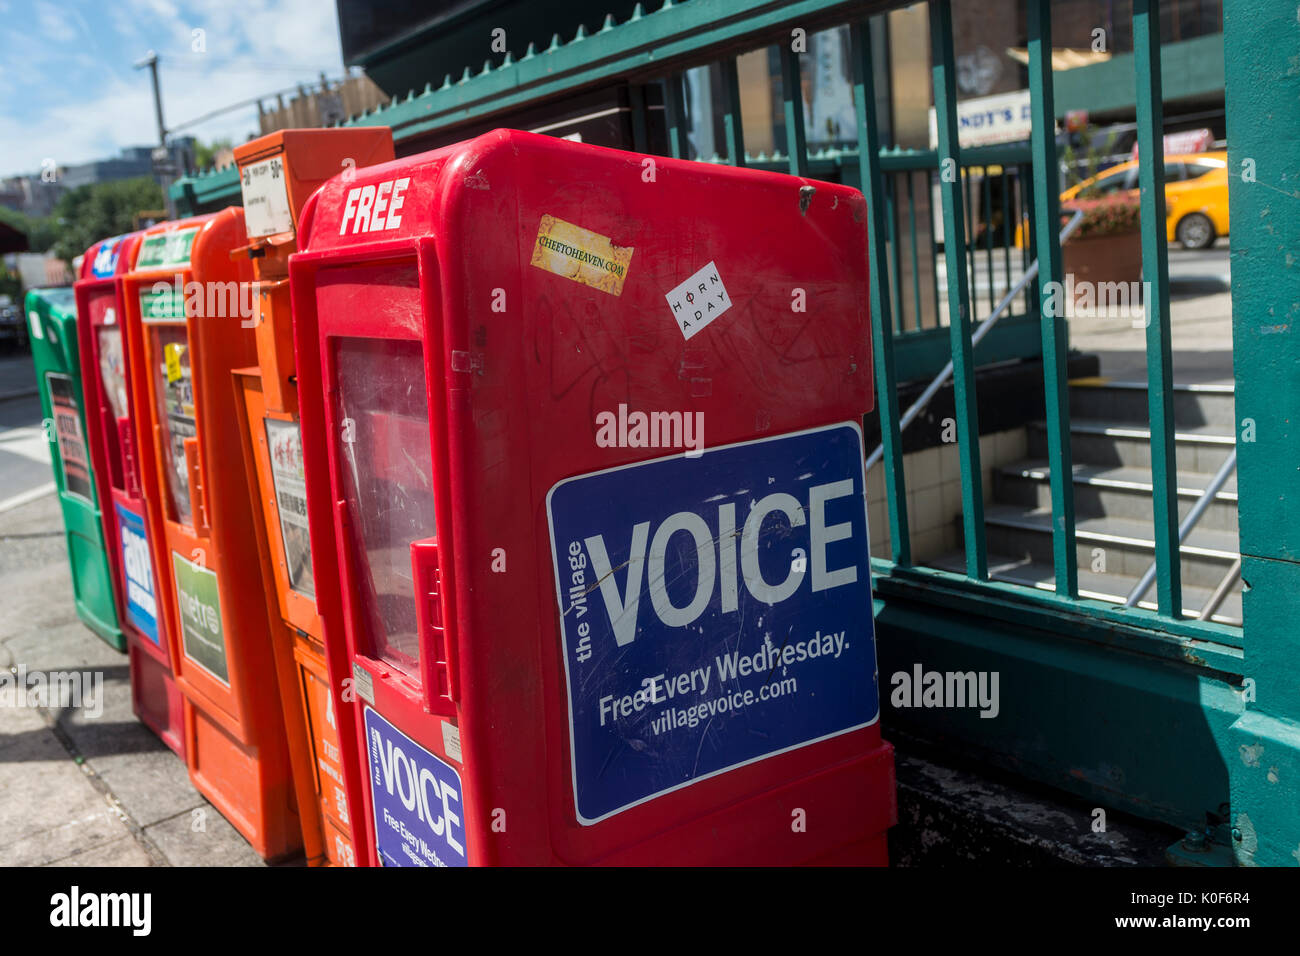 New York, NY, USA. 23rd Aug, 2017. Newspaper boxes outside the subway station in Sheridan Square, across the street from 61 Christopher Street, where the Village Voice opened it's first office in the early 60s. On Tuesday August 22, Peter D Barbey announced the 62 year old alternative weekly newspaper would no longer publish a print edition.An online edition will still be available via the internet CREDIT: Credit: Stacy Walsh Rosenstock/Alamy Live News - Stock Image